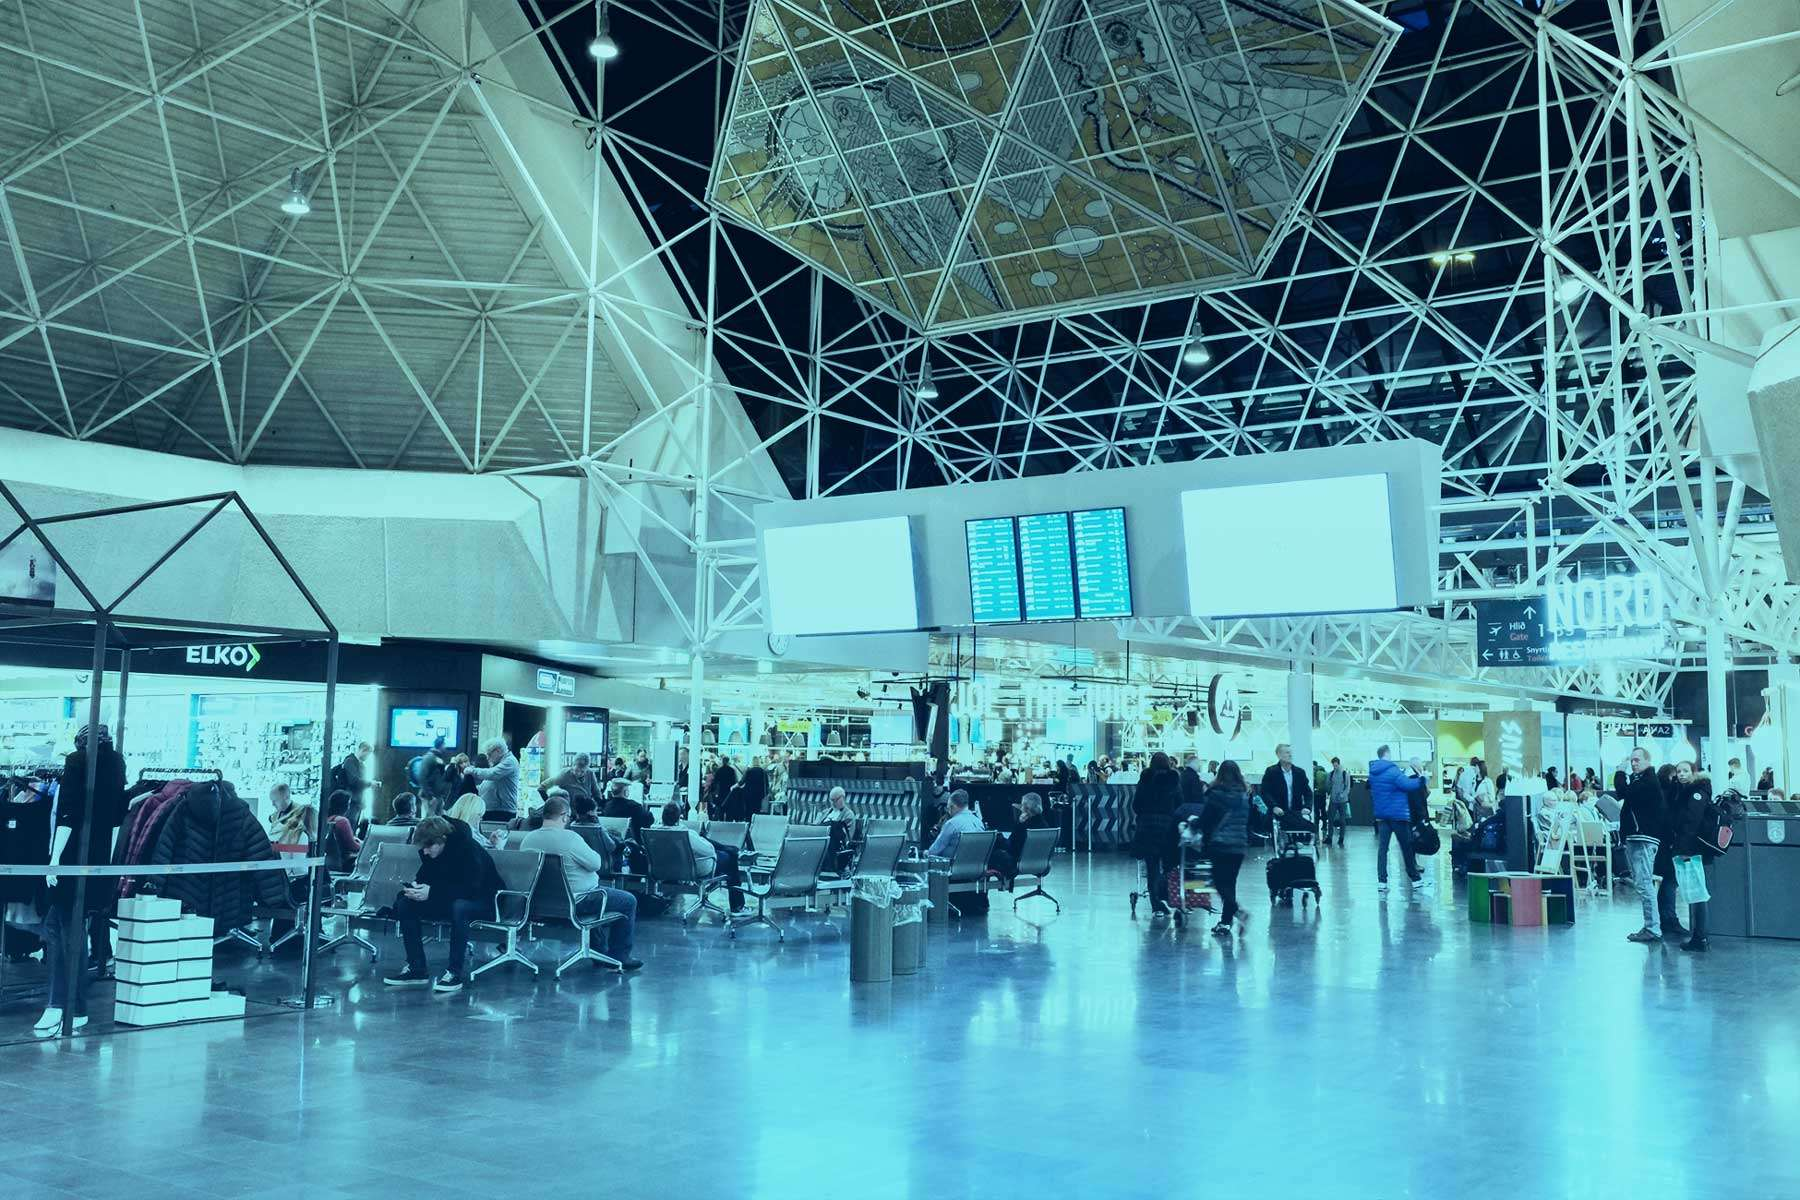 Keflavik Expands Veovo Solution for Airport-wide Passenger Flow Visibility to Ensure Smooth Travel